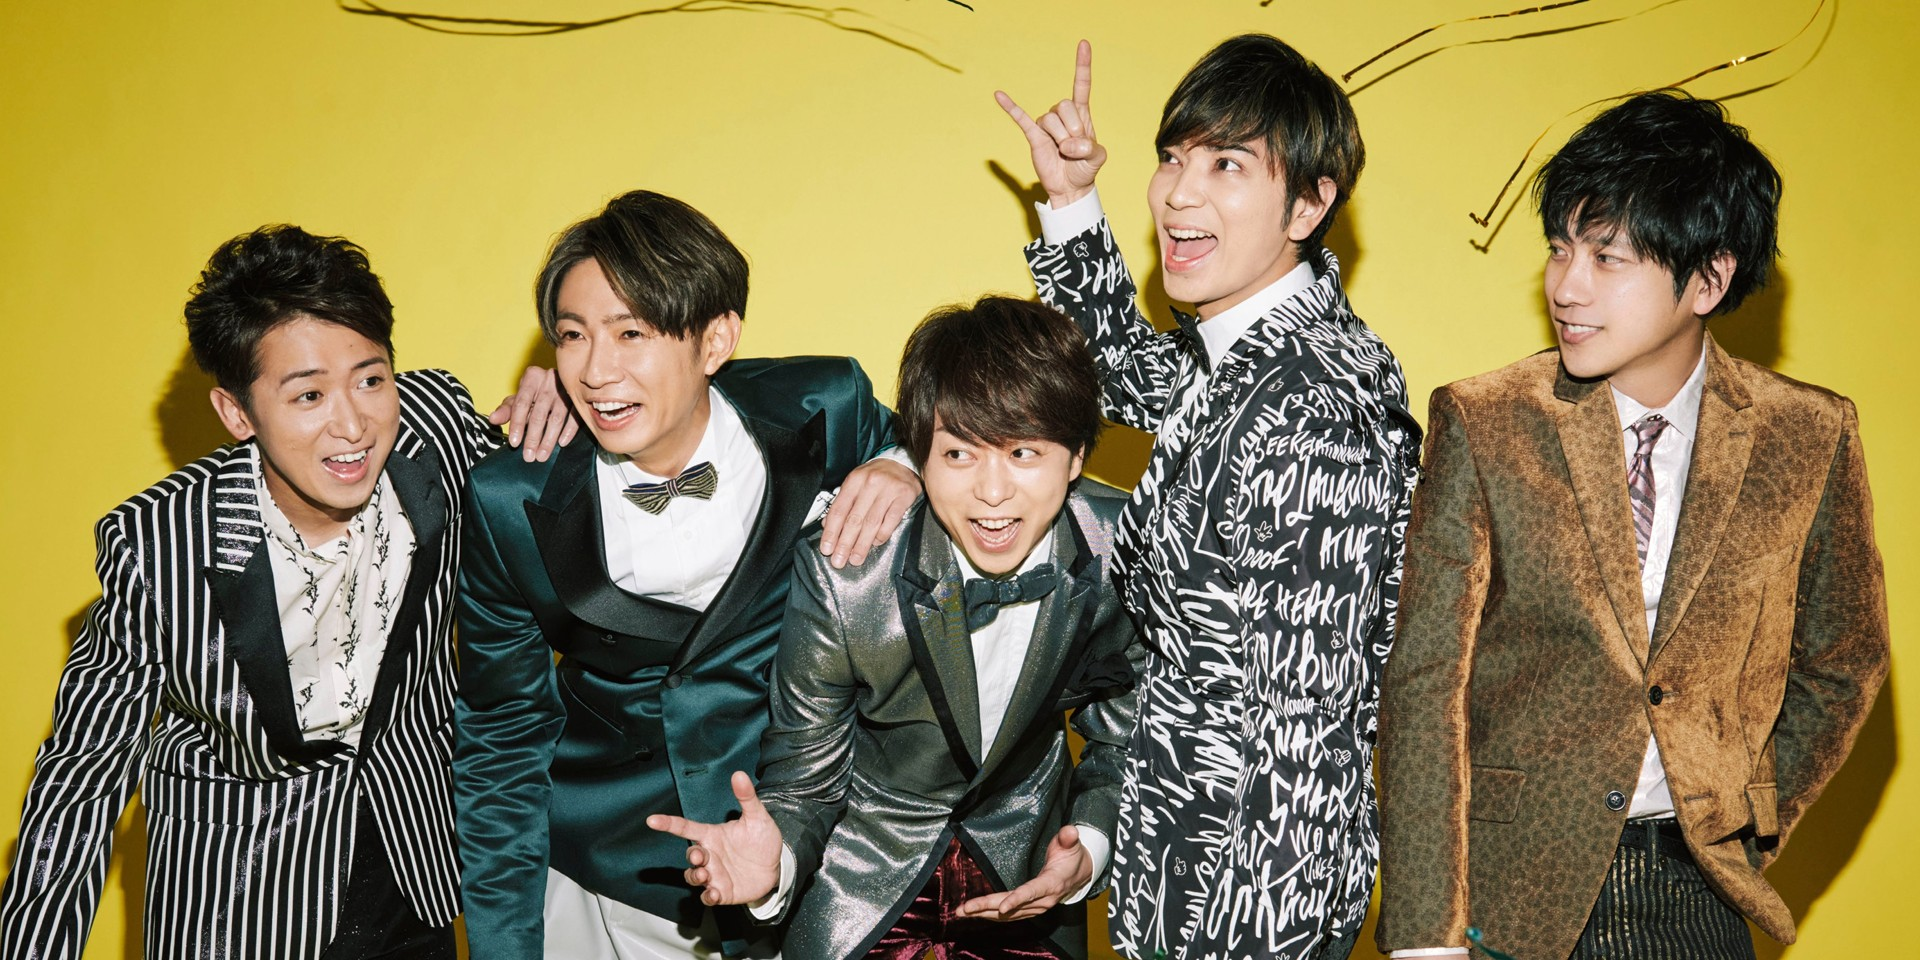 ARASHI celebrate 21st anniversary with new album This is Arashi, livestream concert, and more